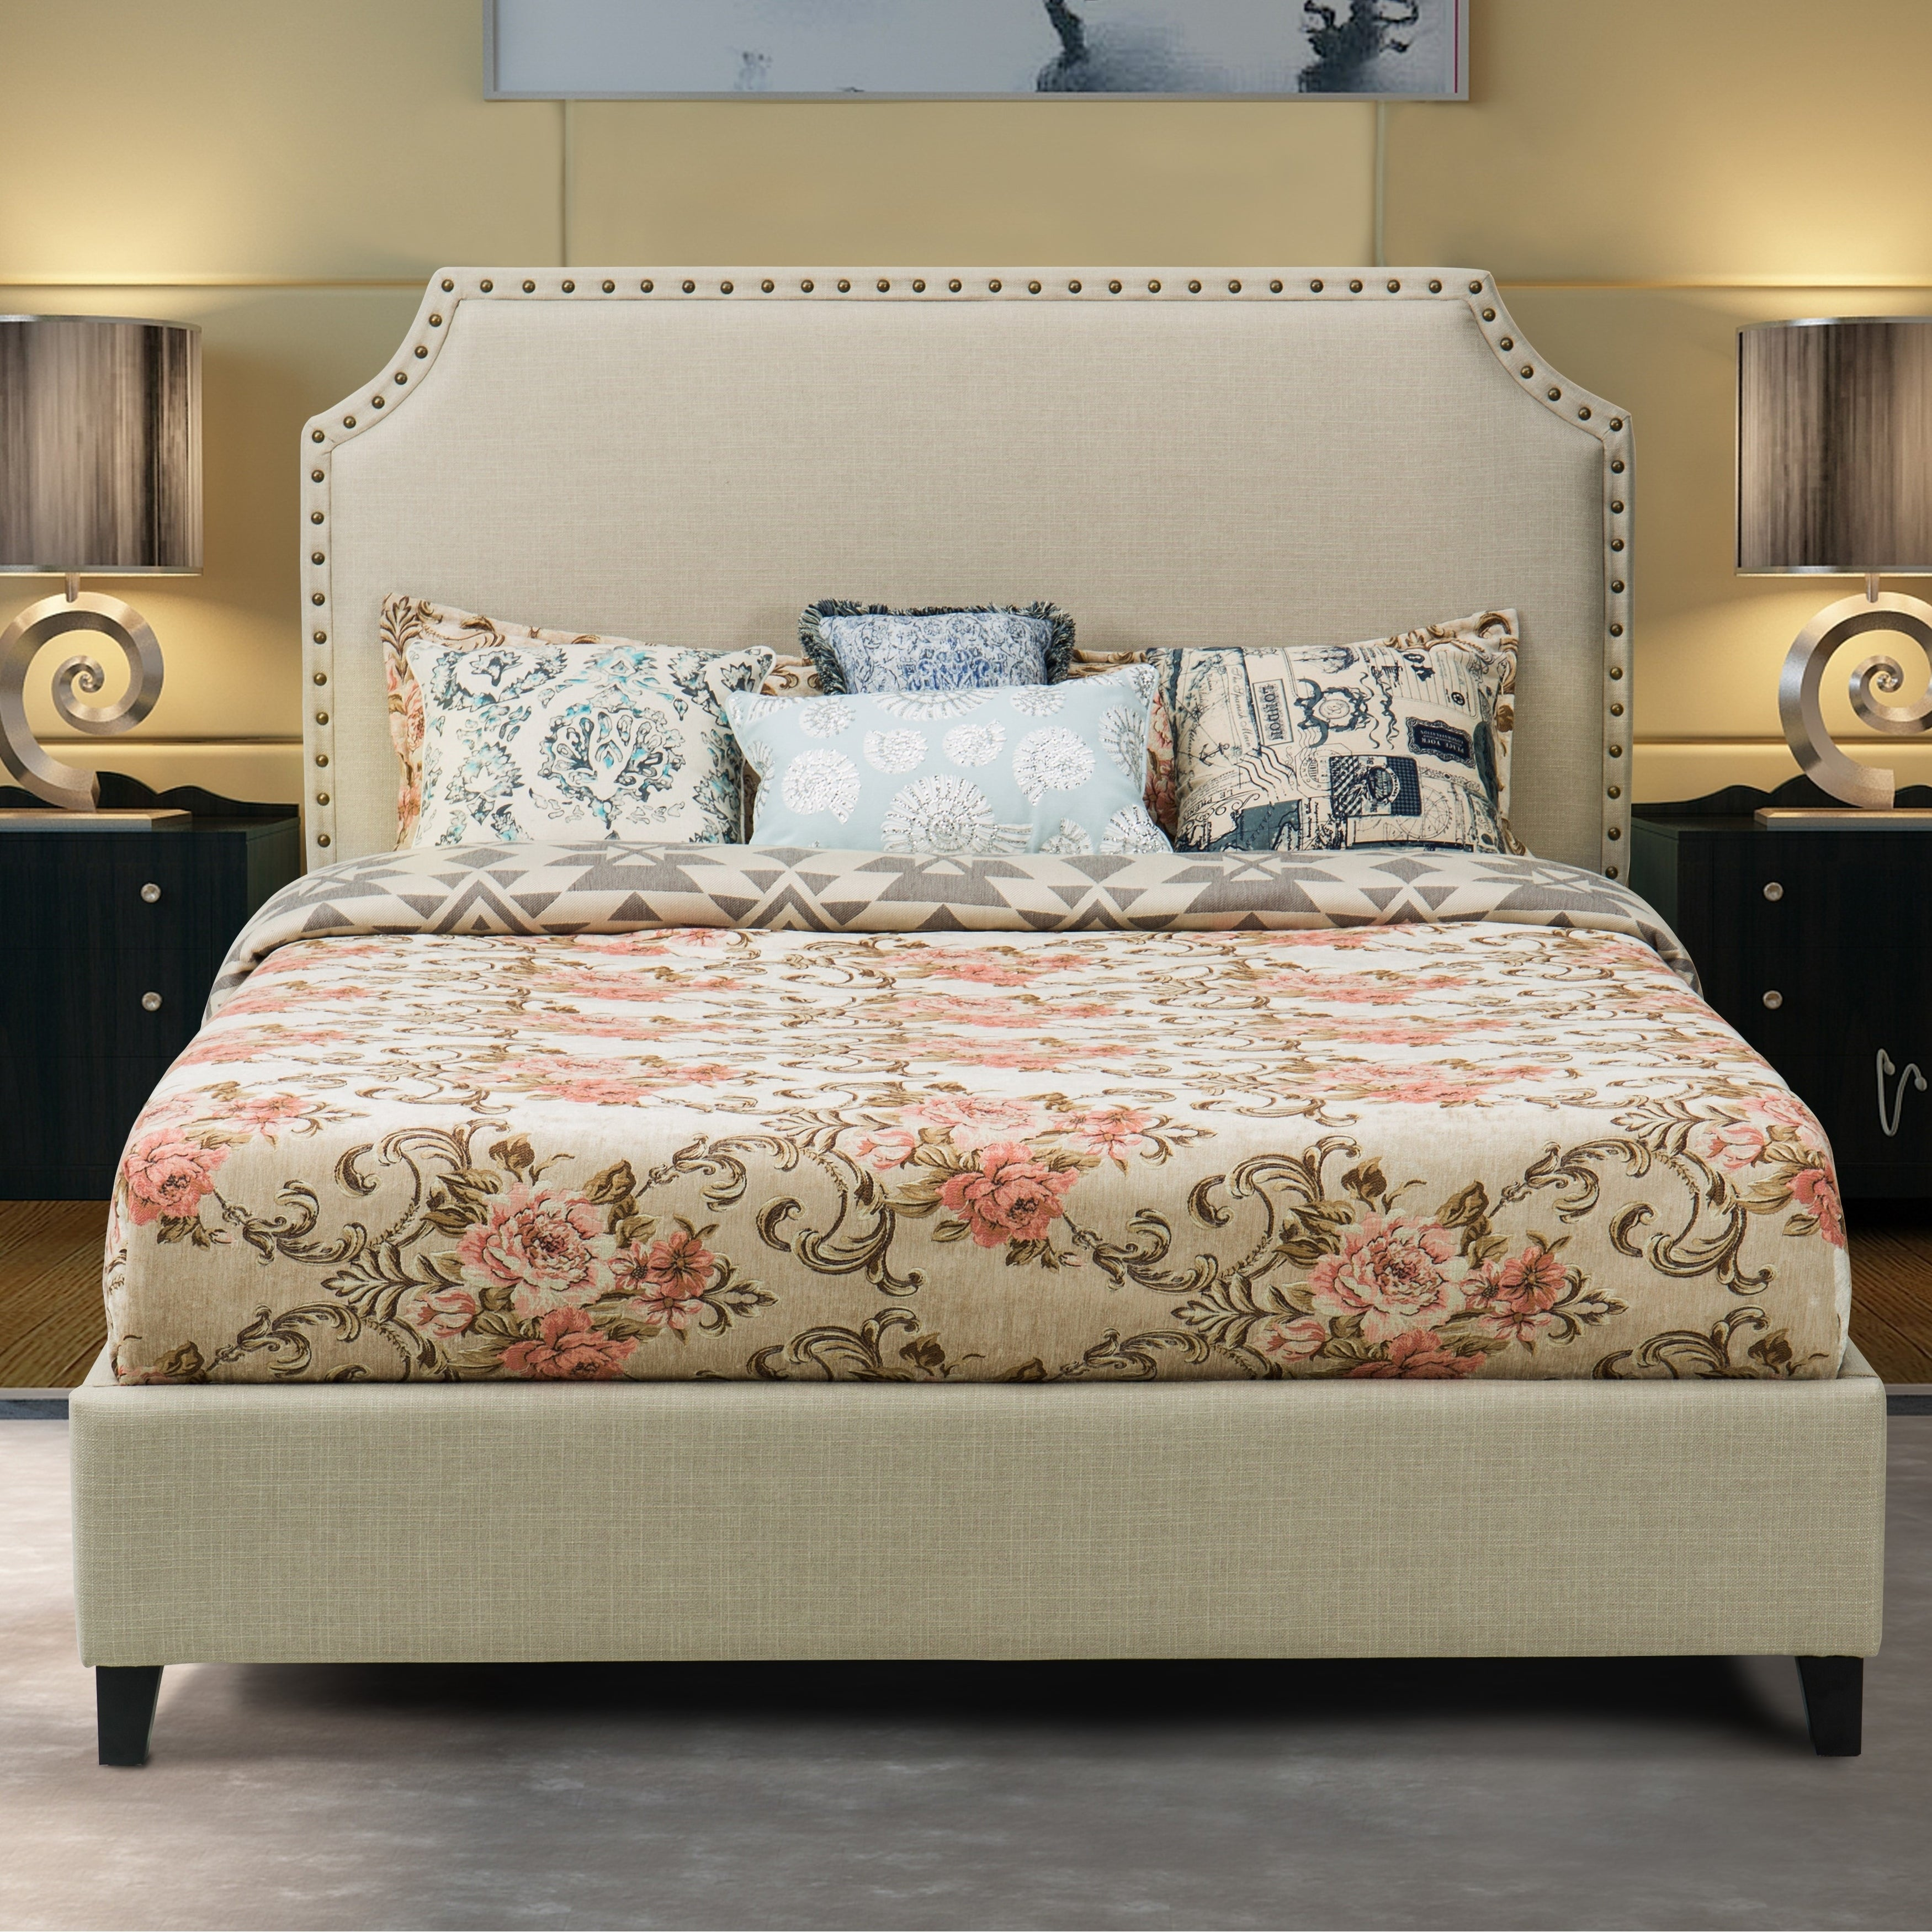 Shop Midtown Upholstered Platform Bed Beige On Sale Overstock 20165725 Queen Queen